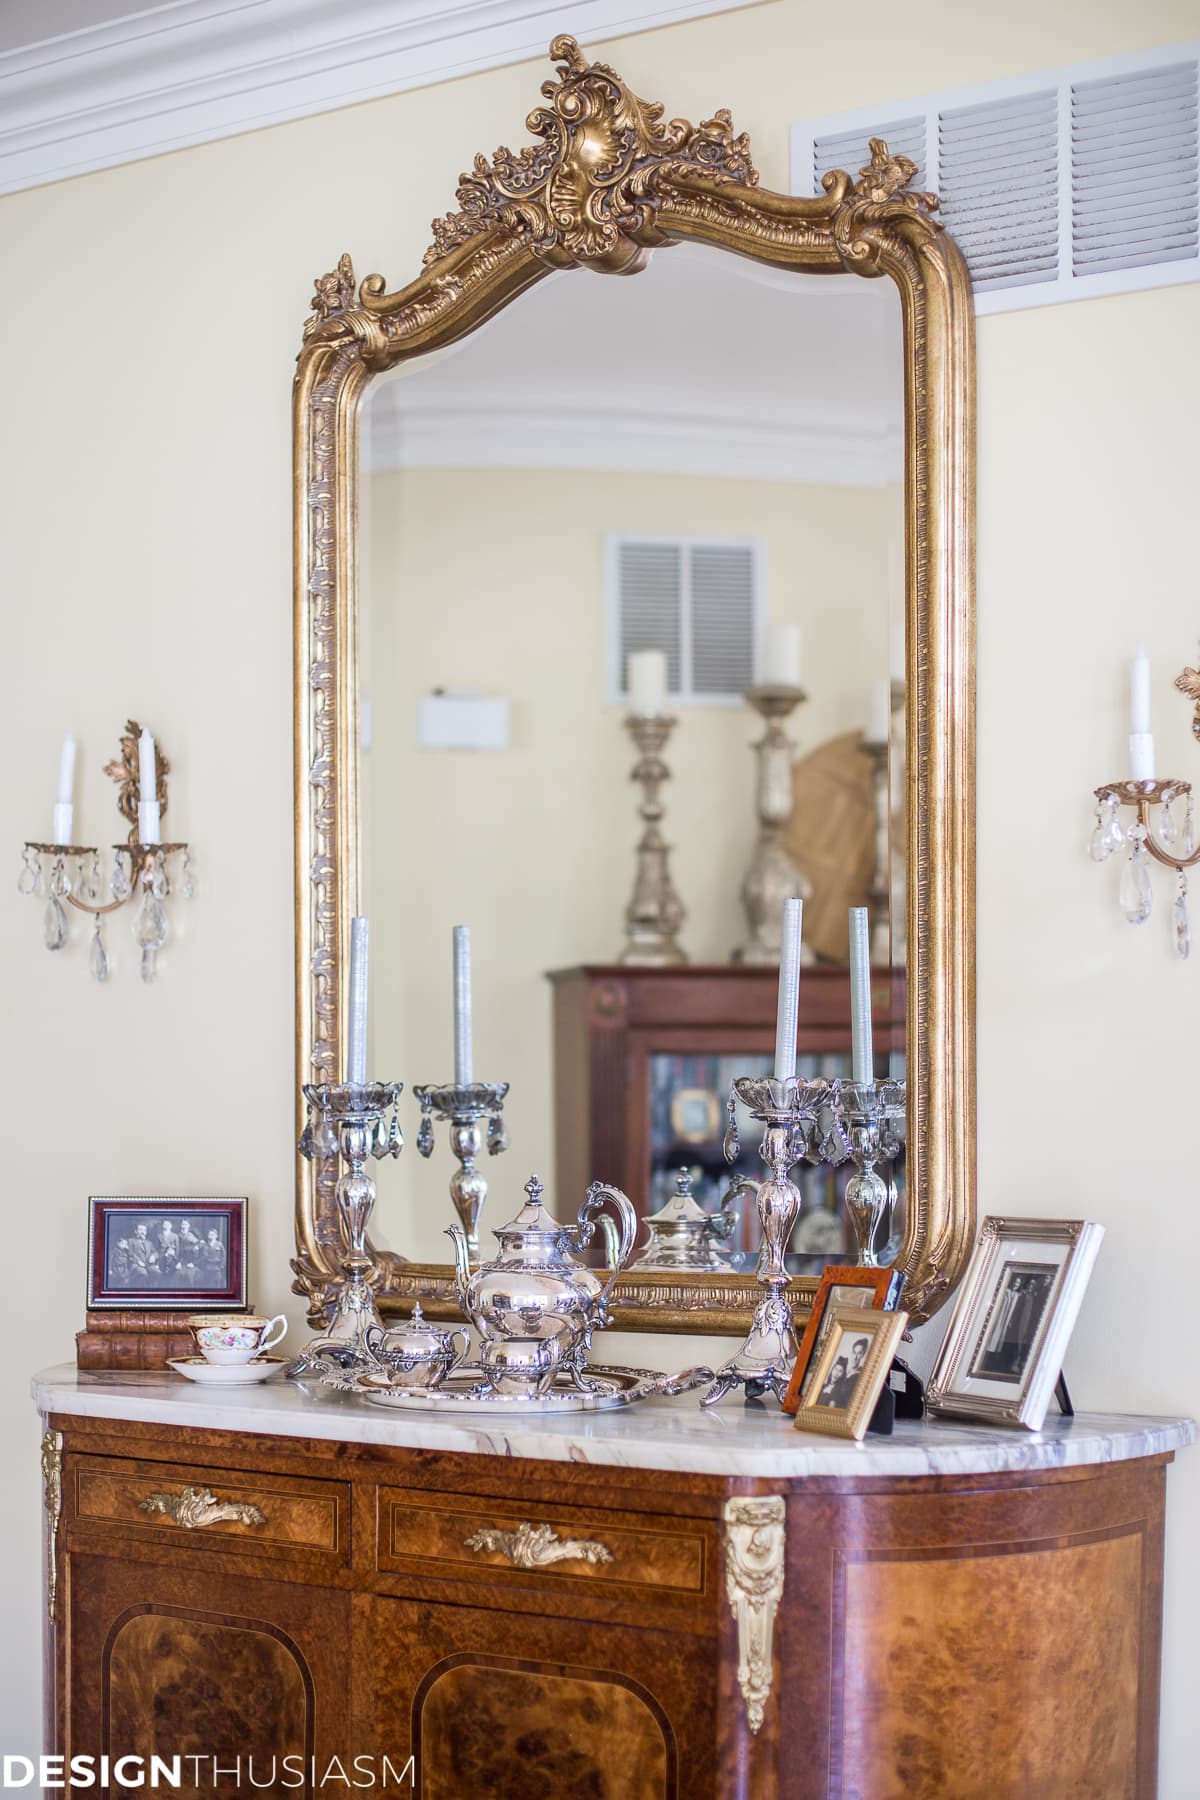 Ways To Save Money When Decorating With French Country Decor